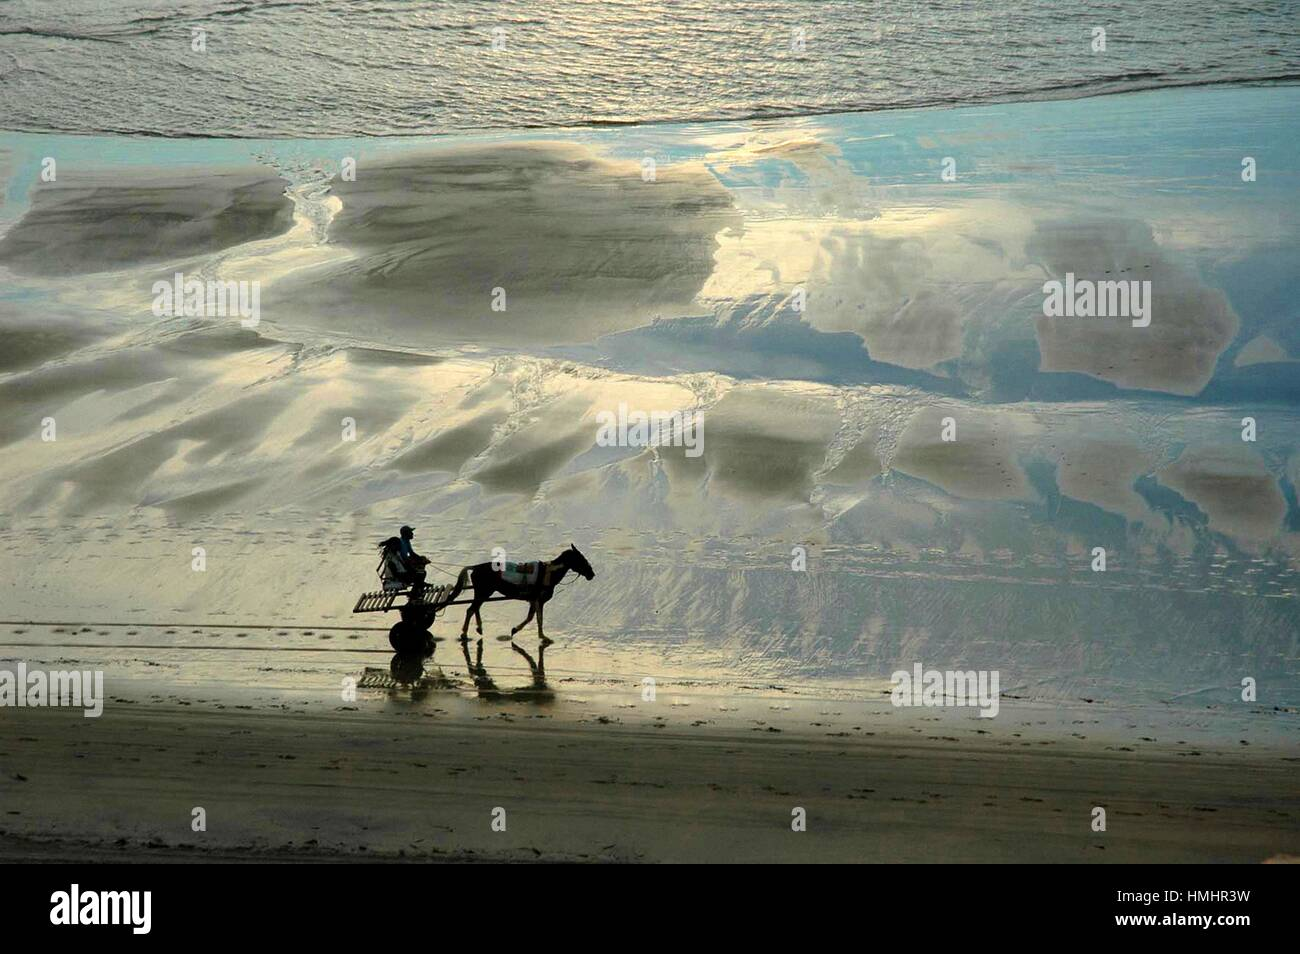 Brazil, Ceara State, Jeriocoacora, a Horse - cart along the Seashore at Sunset. - Stock Image